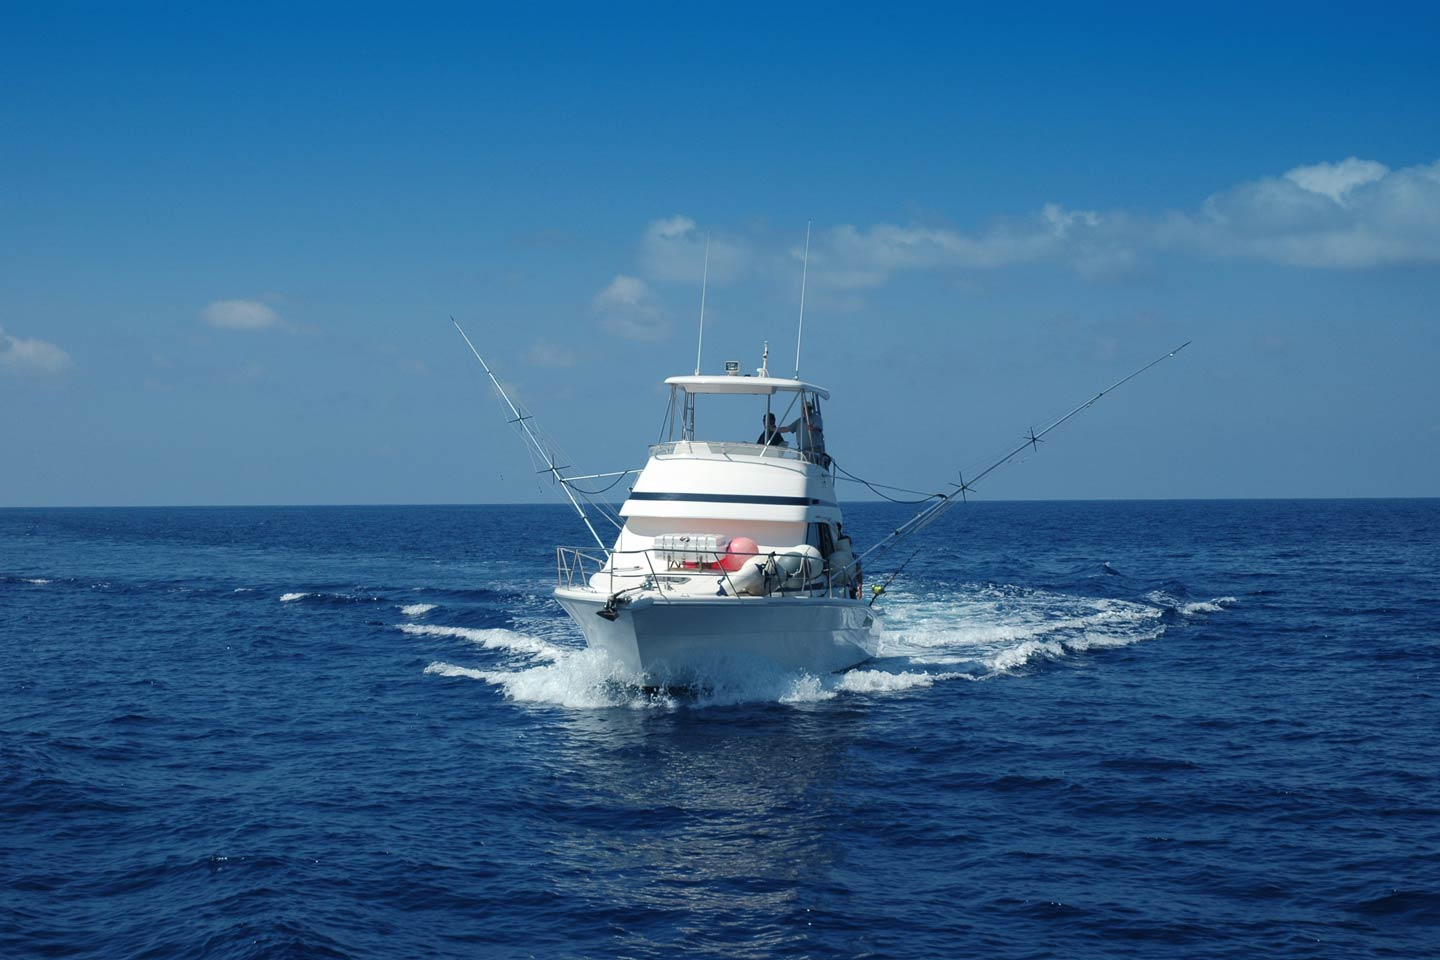 Charter boat heading out for big game fishing in New Smyrna Beach